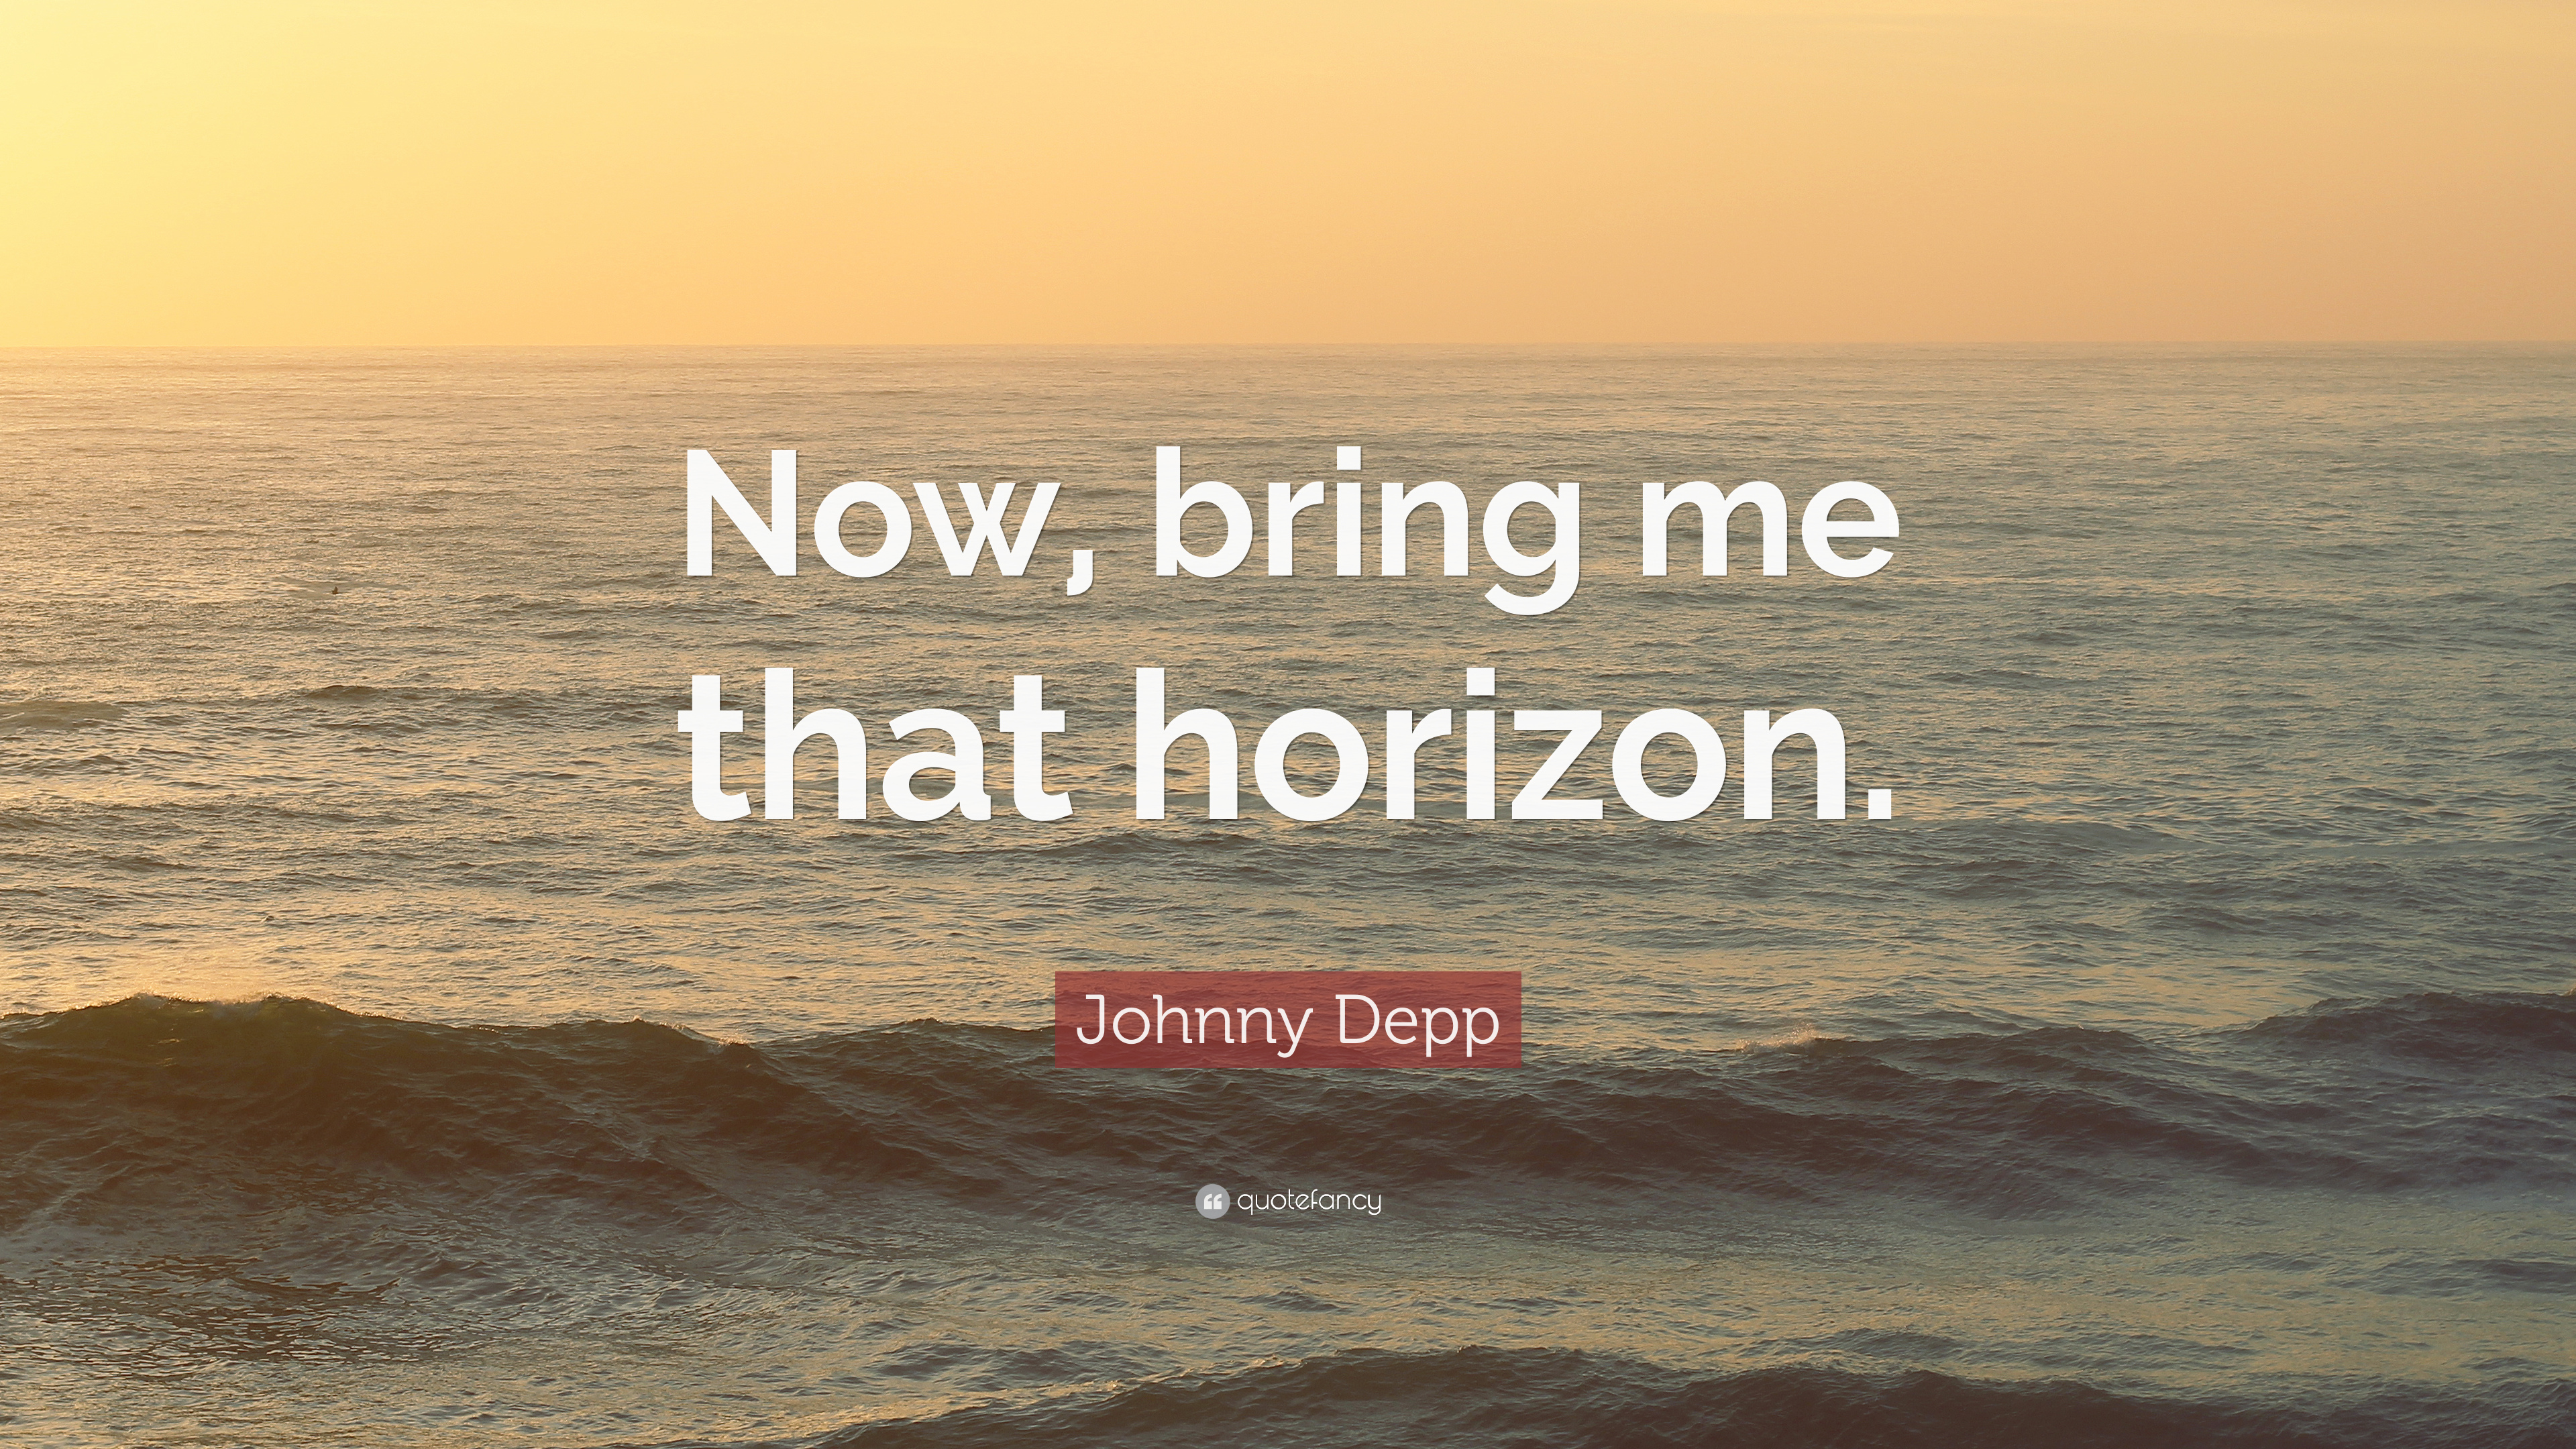 Johnny Depp Quotes 100 Wallpapers Quotefancy